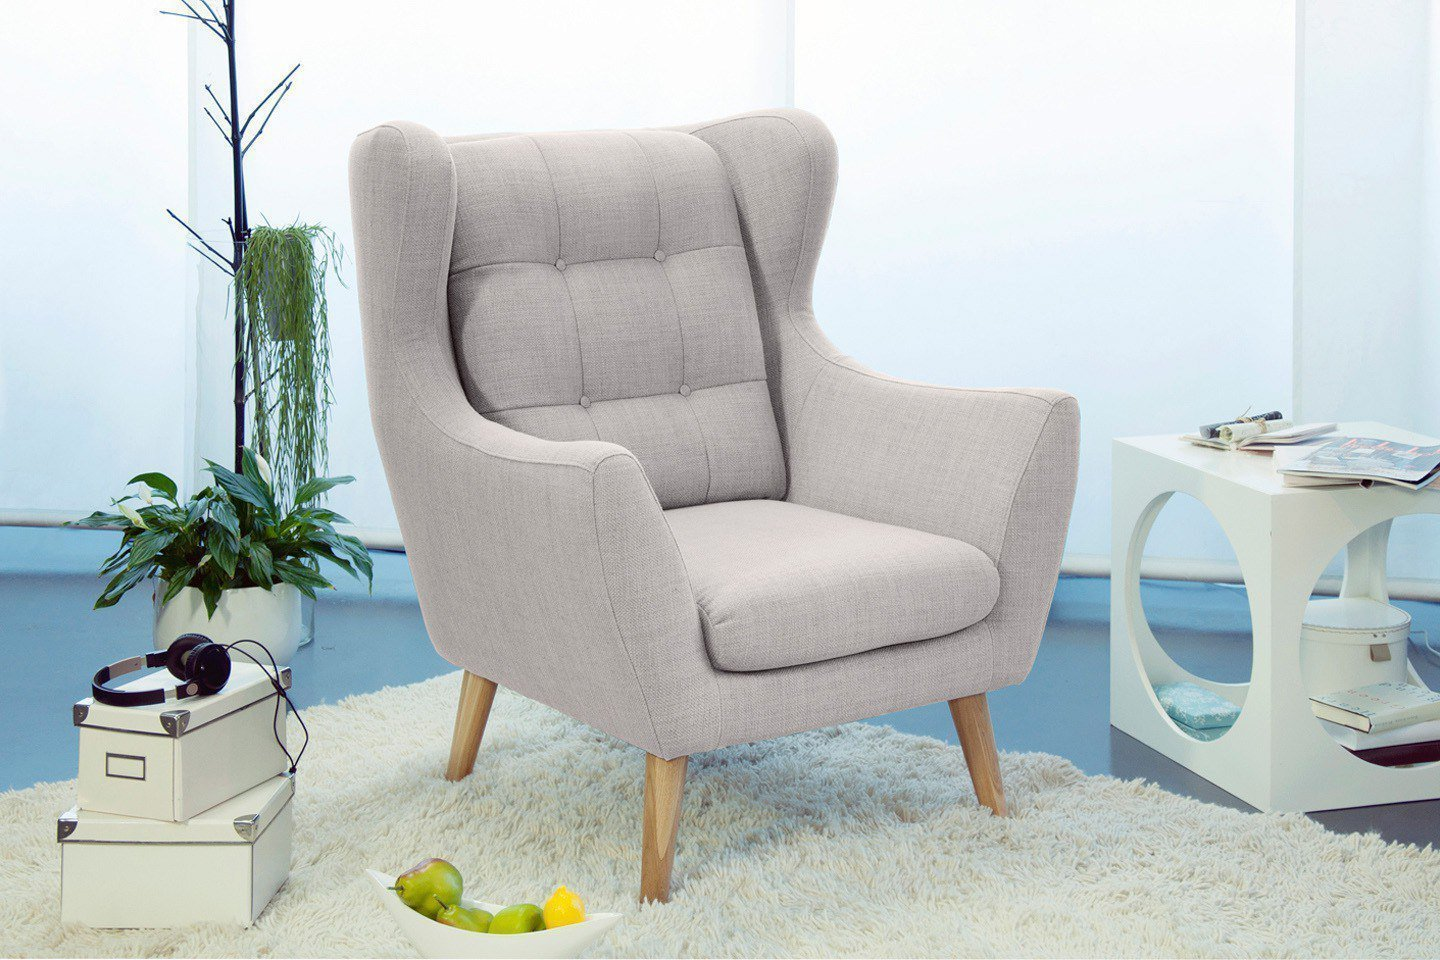 Sacly Lounge Sessel Ohrensessel Creme